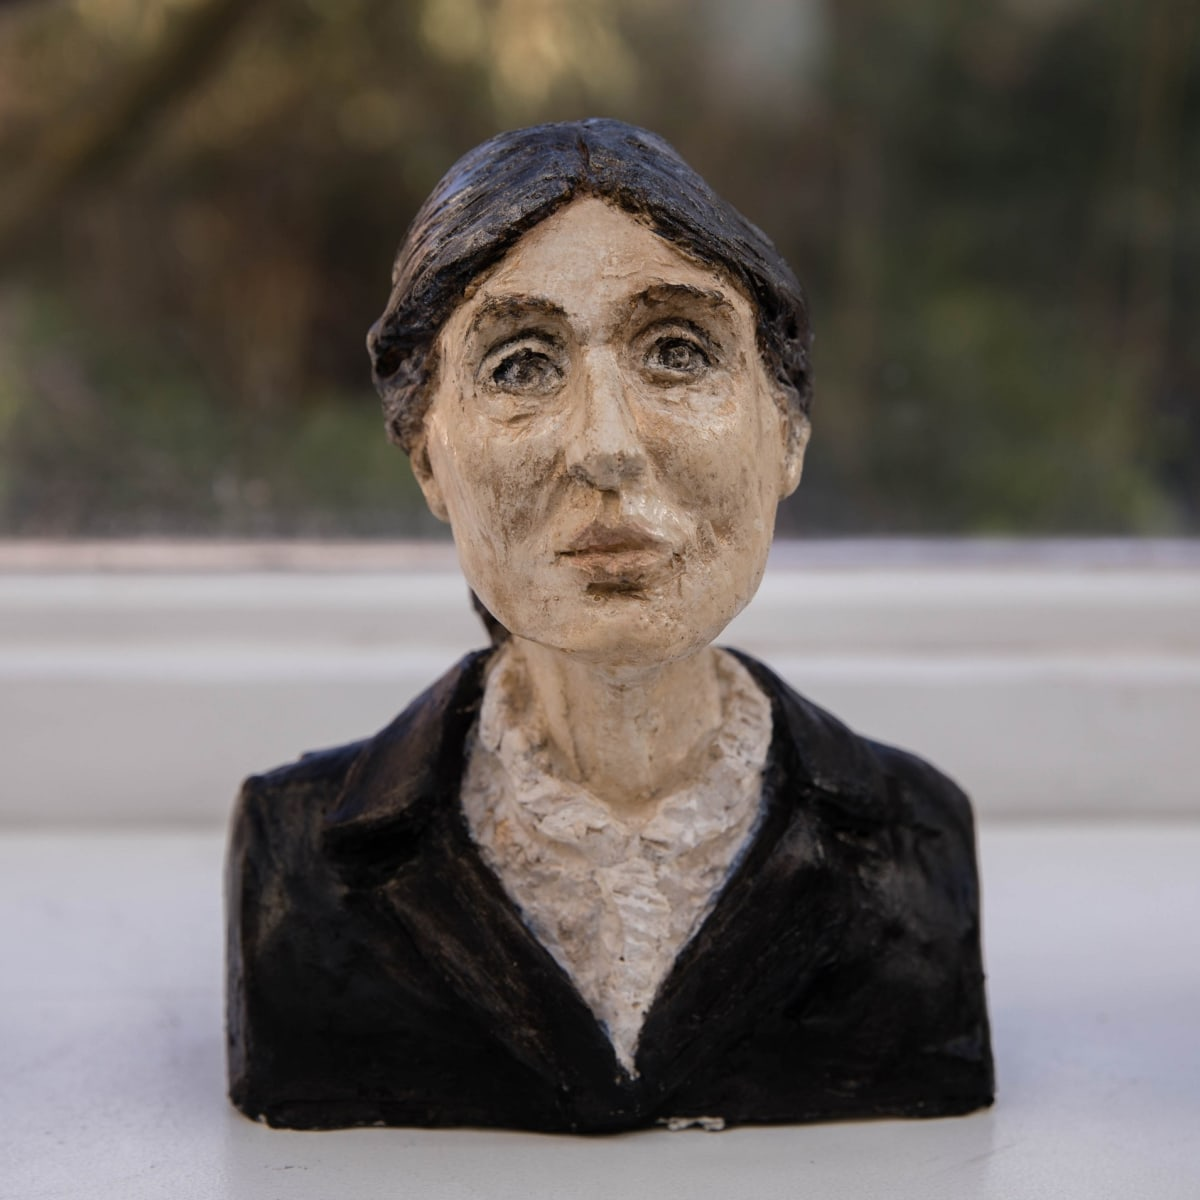 Nicole Farhi Virginia Woolf ciment fondu and acrylic; hand-painted bronze casts available to purchase 20 x 16 x 7 cm edition of 7 + 3 APs